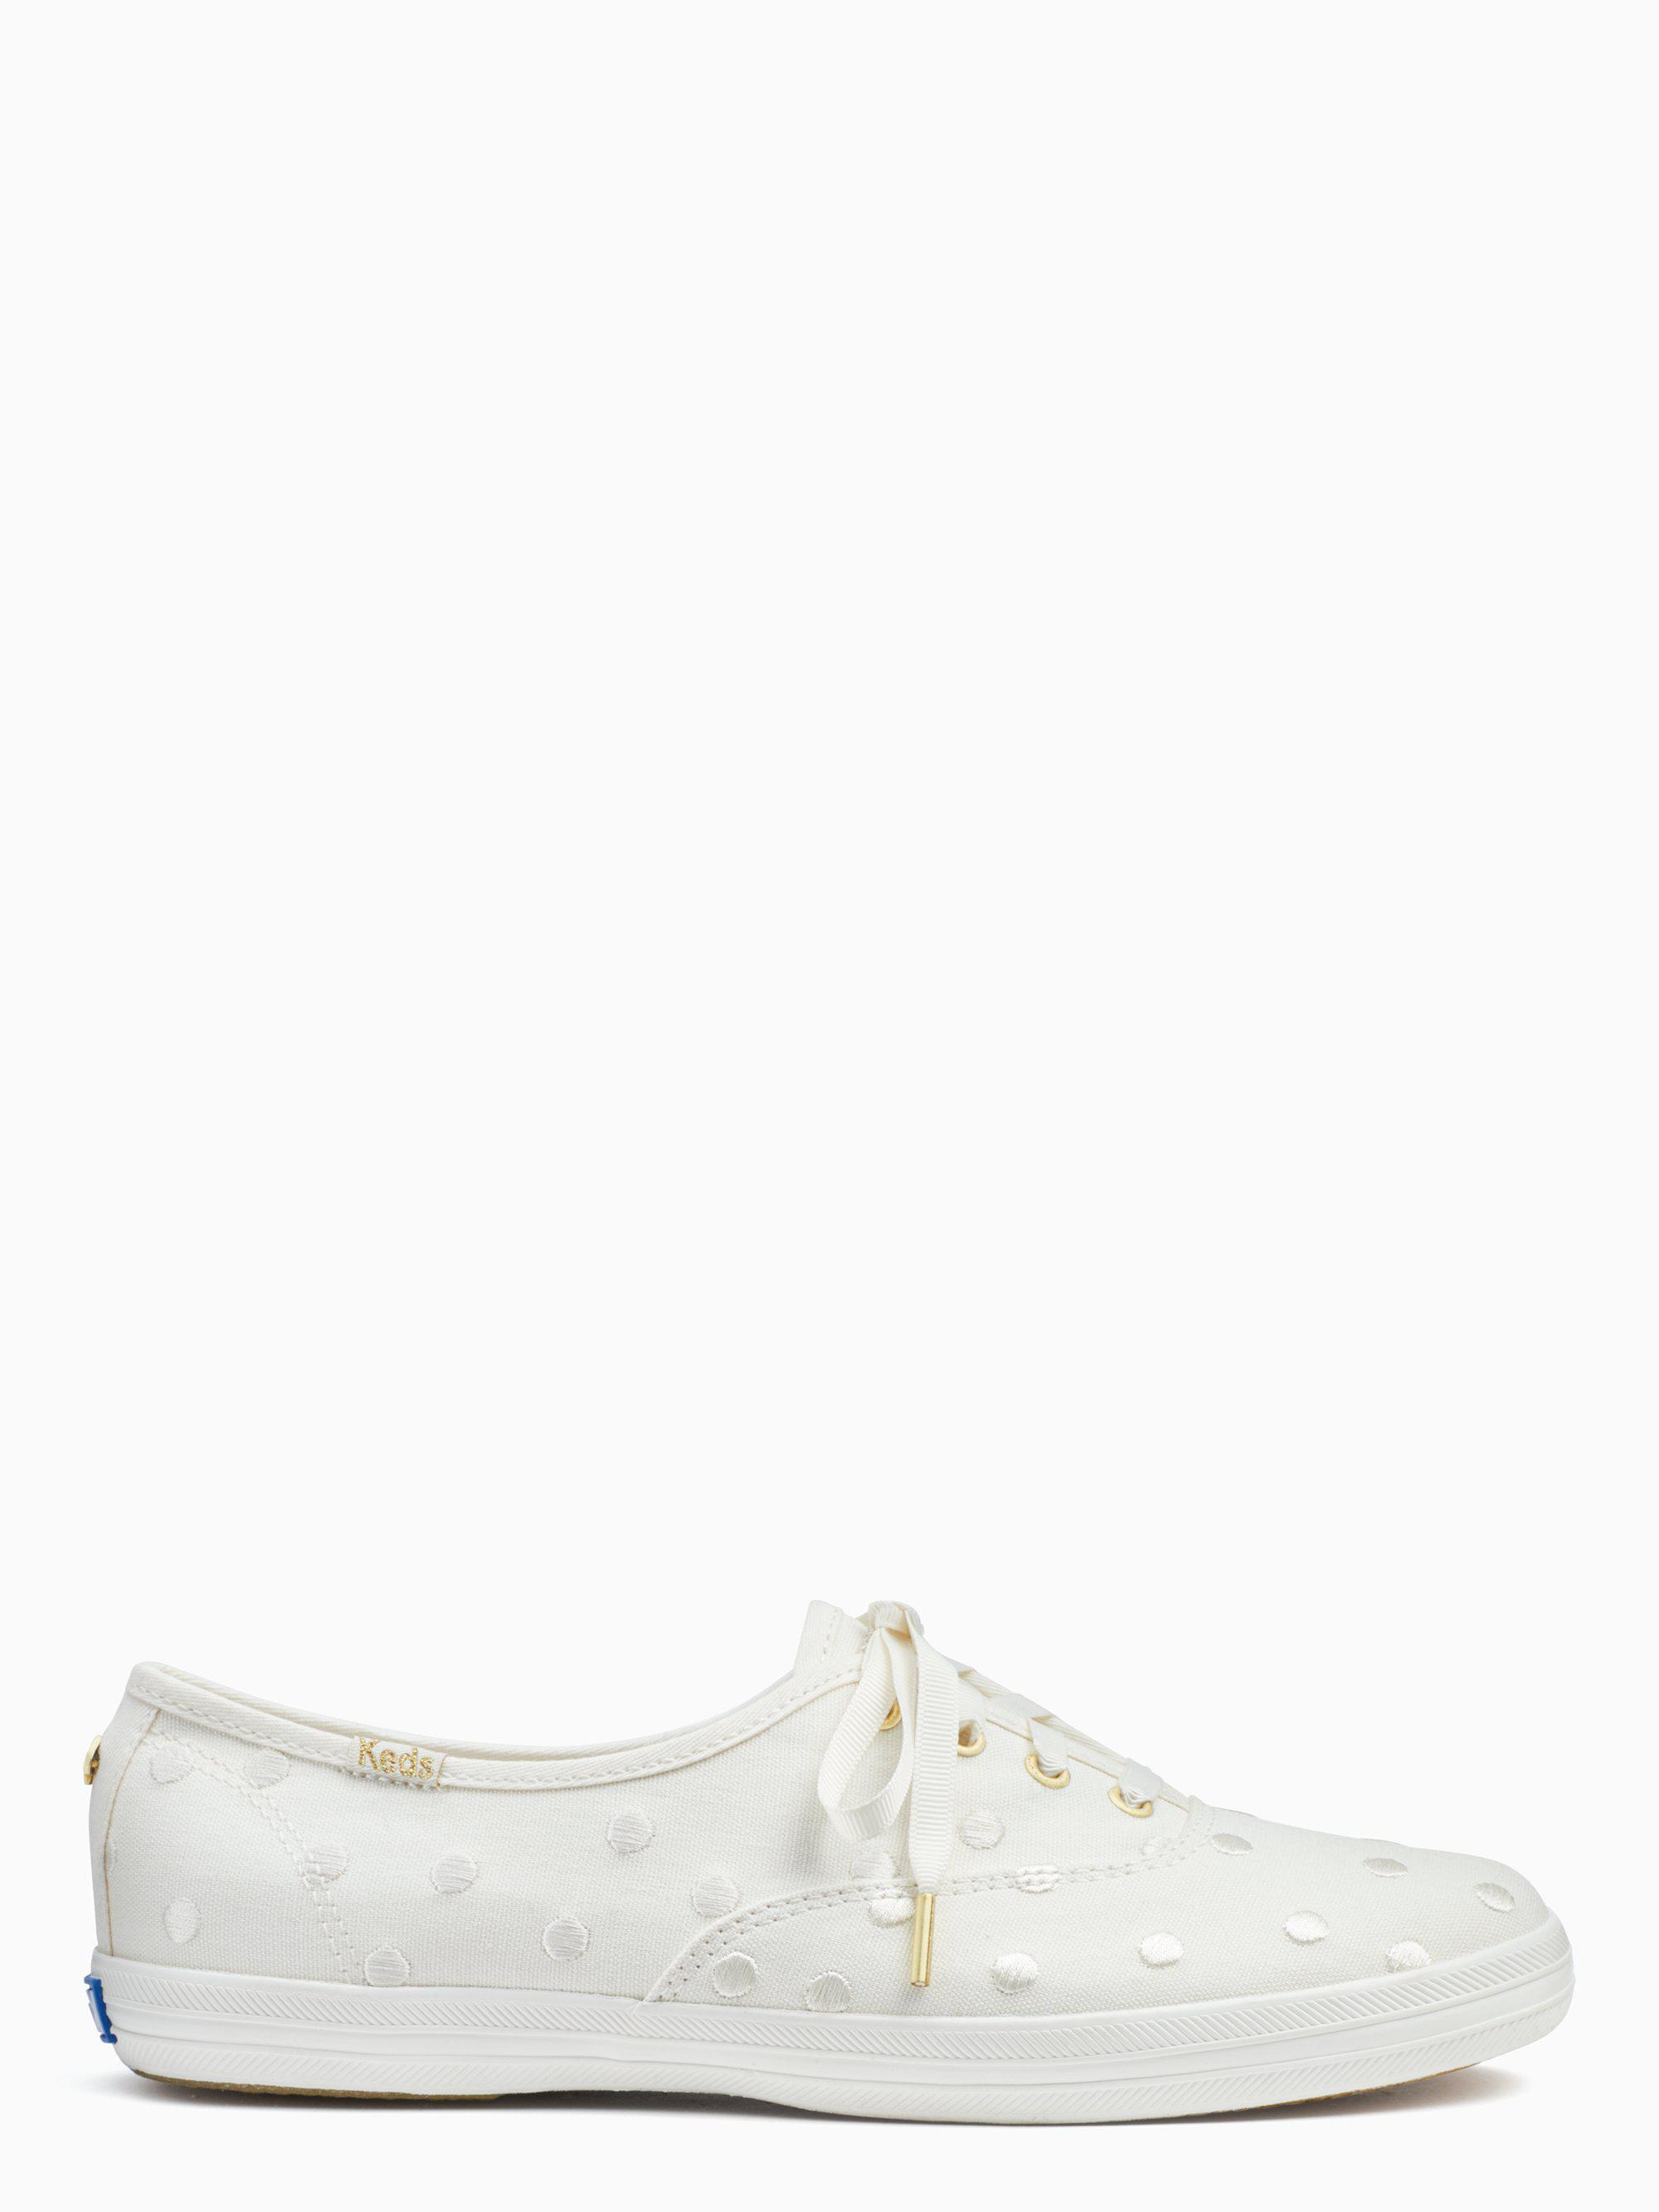 48dcd31f77 Kate Spade - White Keds X New York Champion Sneakers - Lyst. View fullscreen